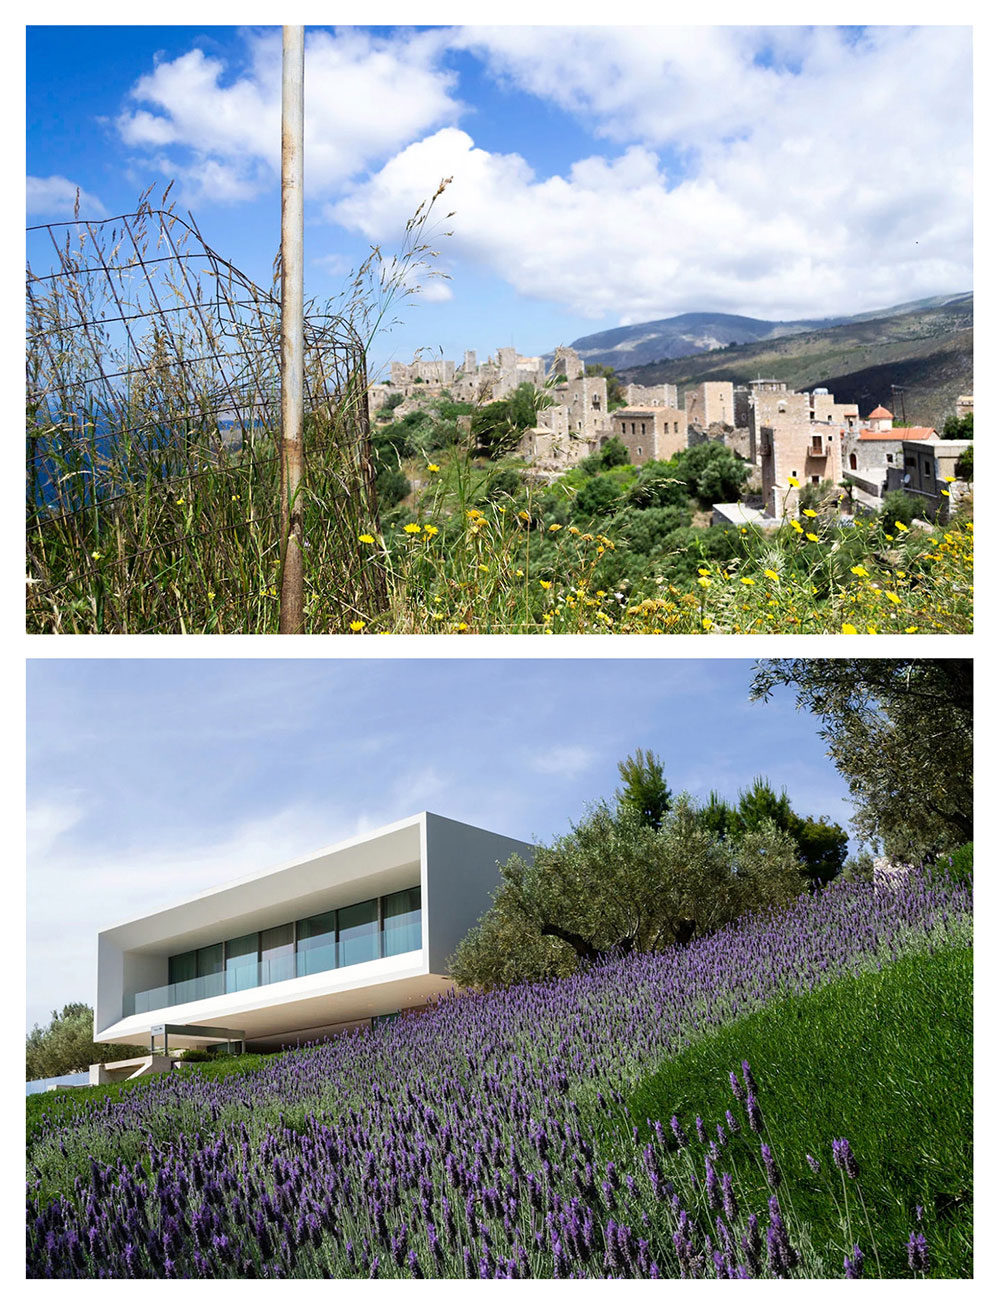 Vathia Mani and TRIF House by Sergey Fedotov in Porto Heli, diptych, Riley Doty